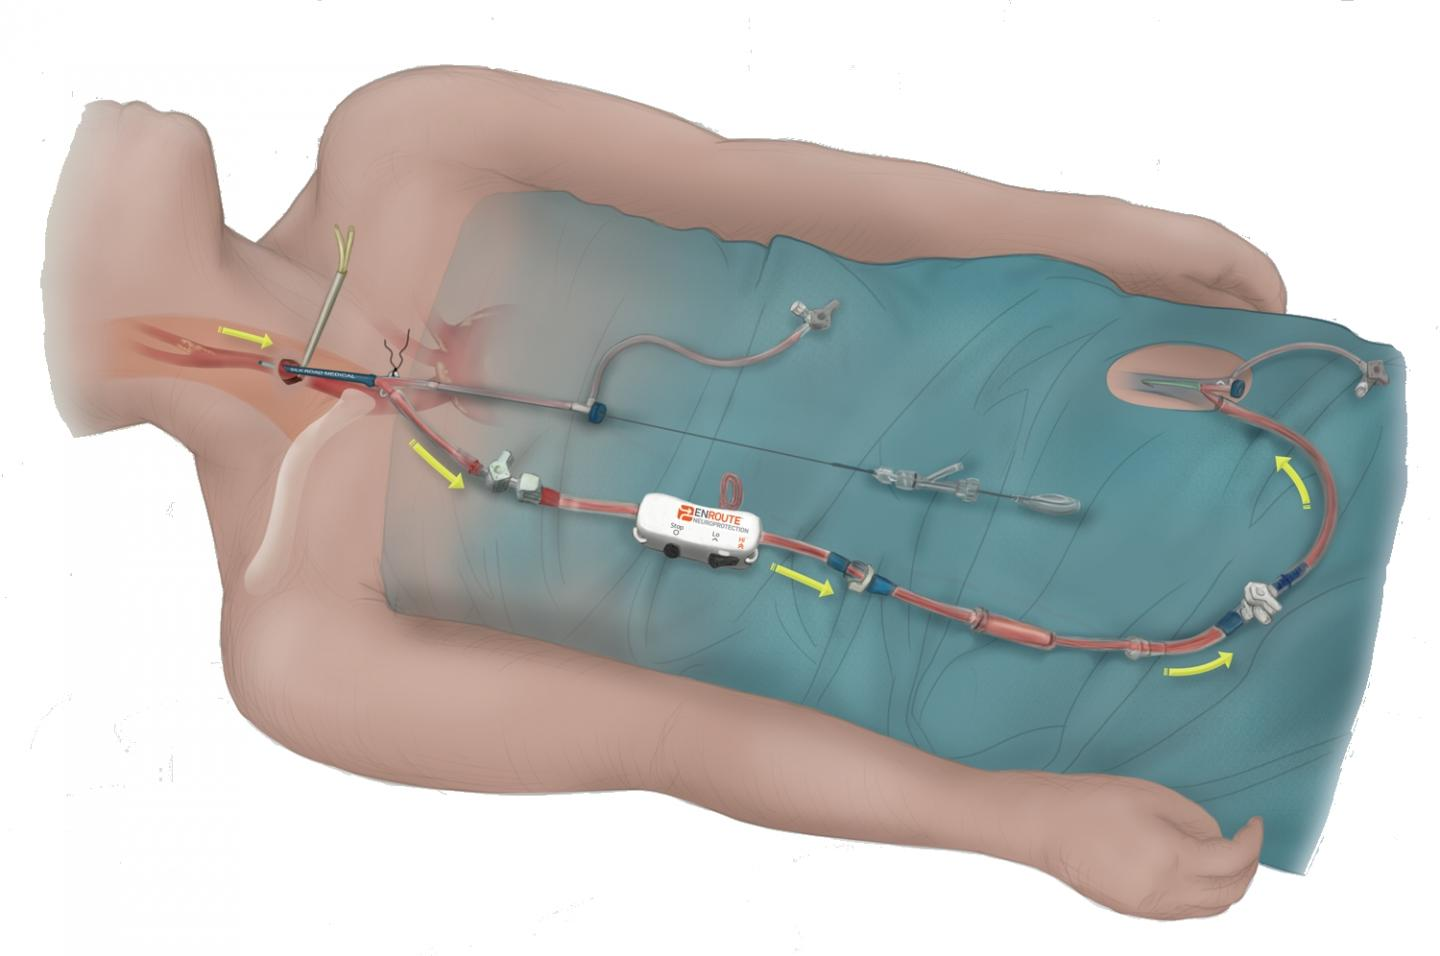 ENROUTE® Transcarotid Neuroprotection and Stent System